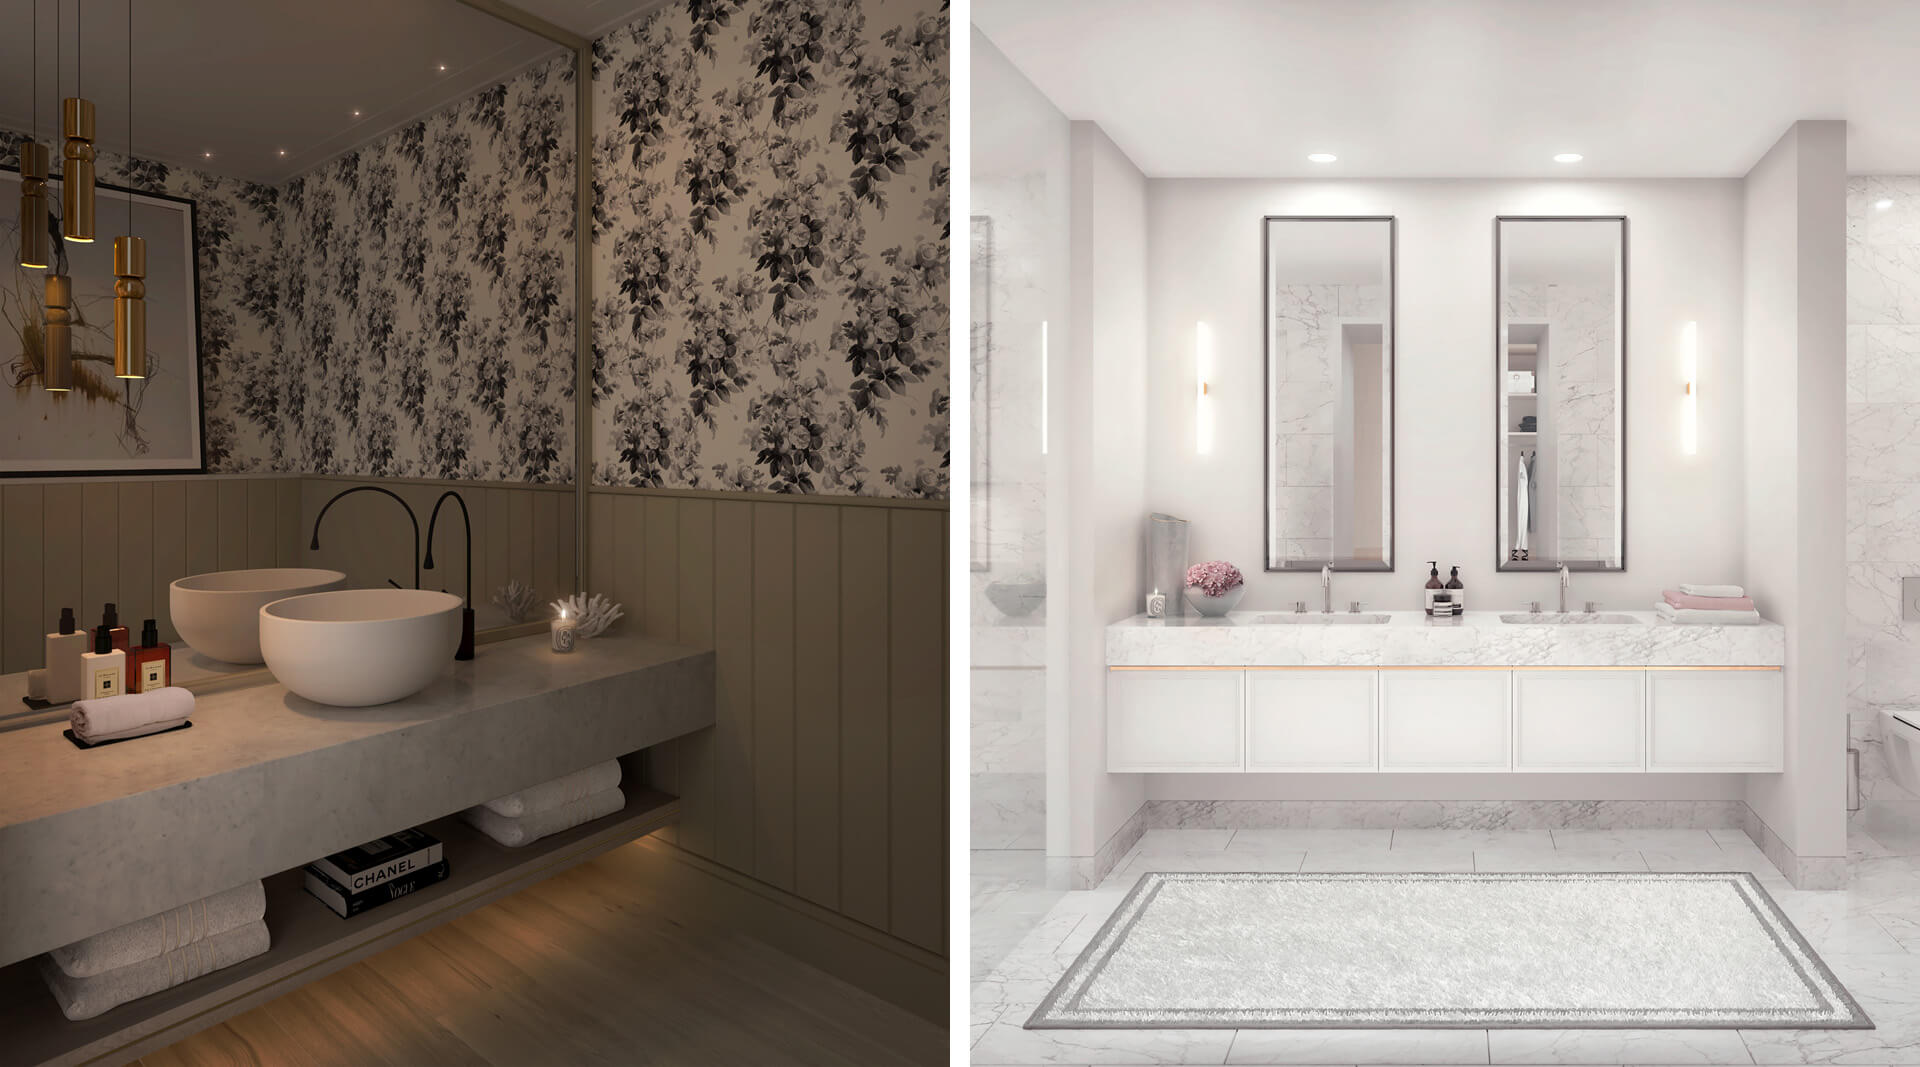 Sanders Studios_Fusion_The Birchwood_Powder room & bathroom CGI